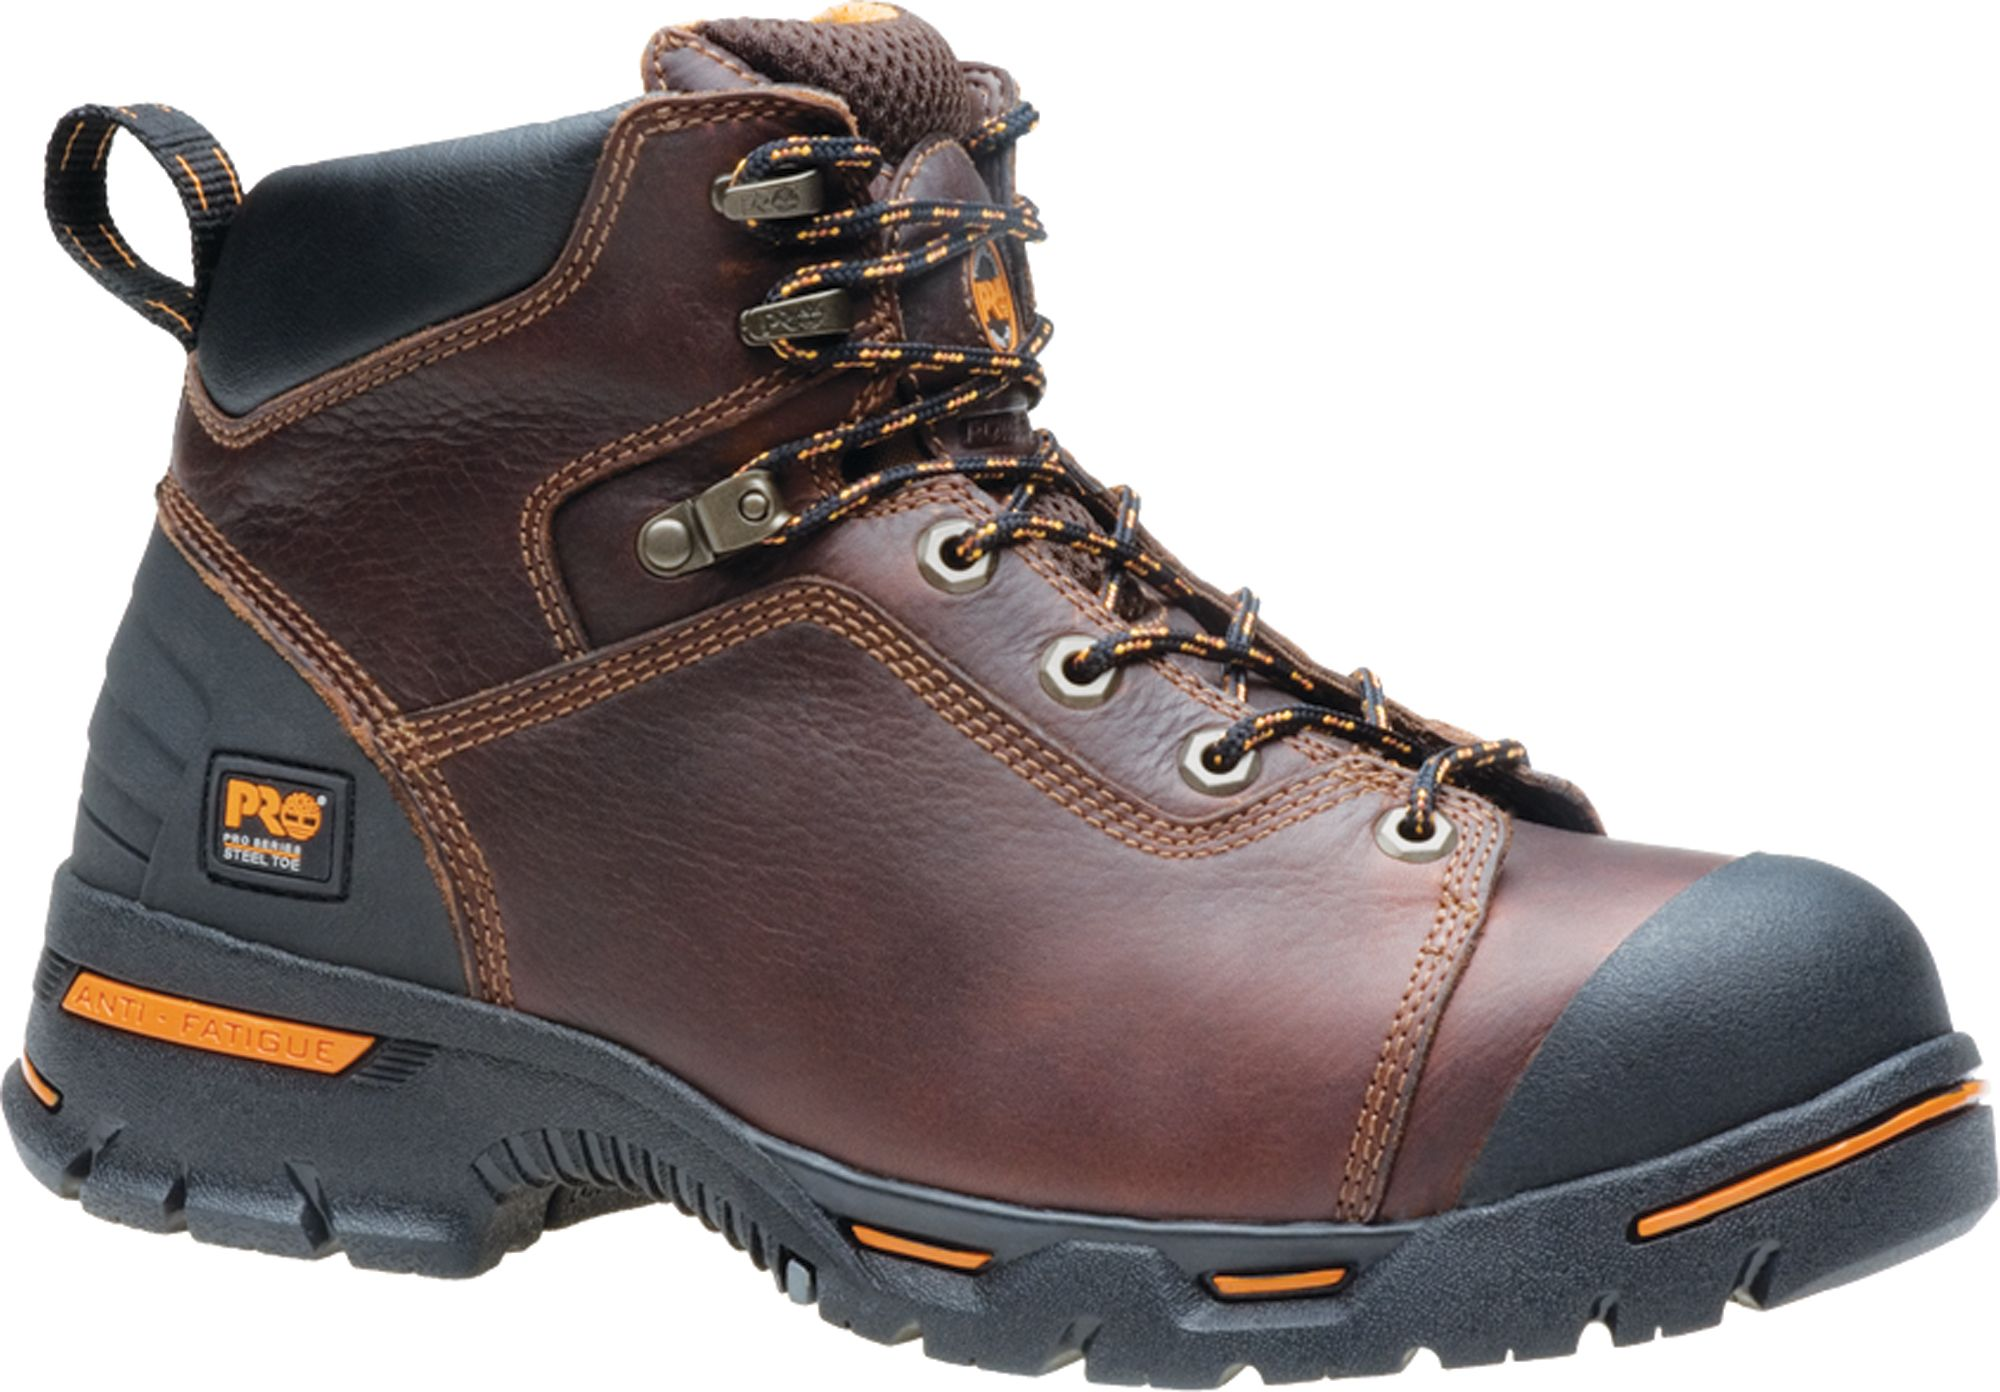 34fea892dd8 Timberland PRO Men's Endurance PR 6'' Soft Toe Work Boots | Products ...